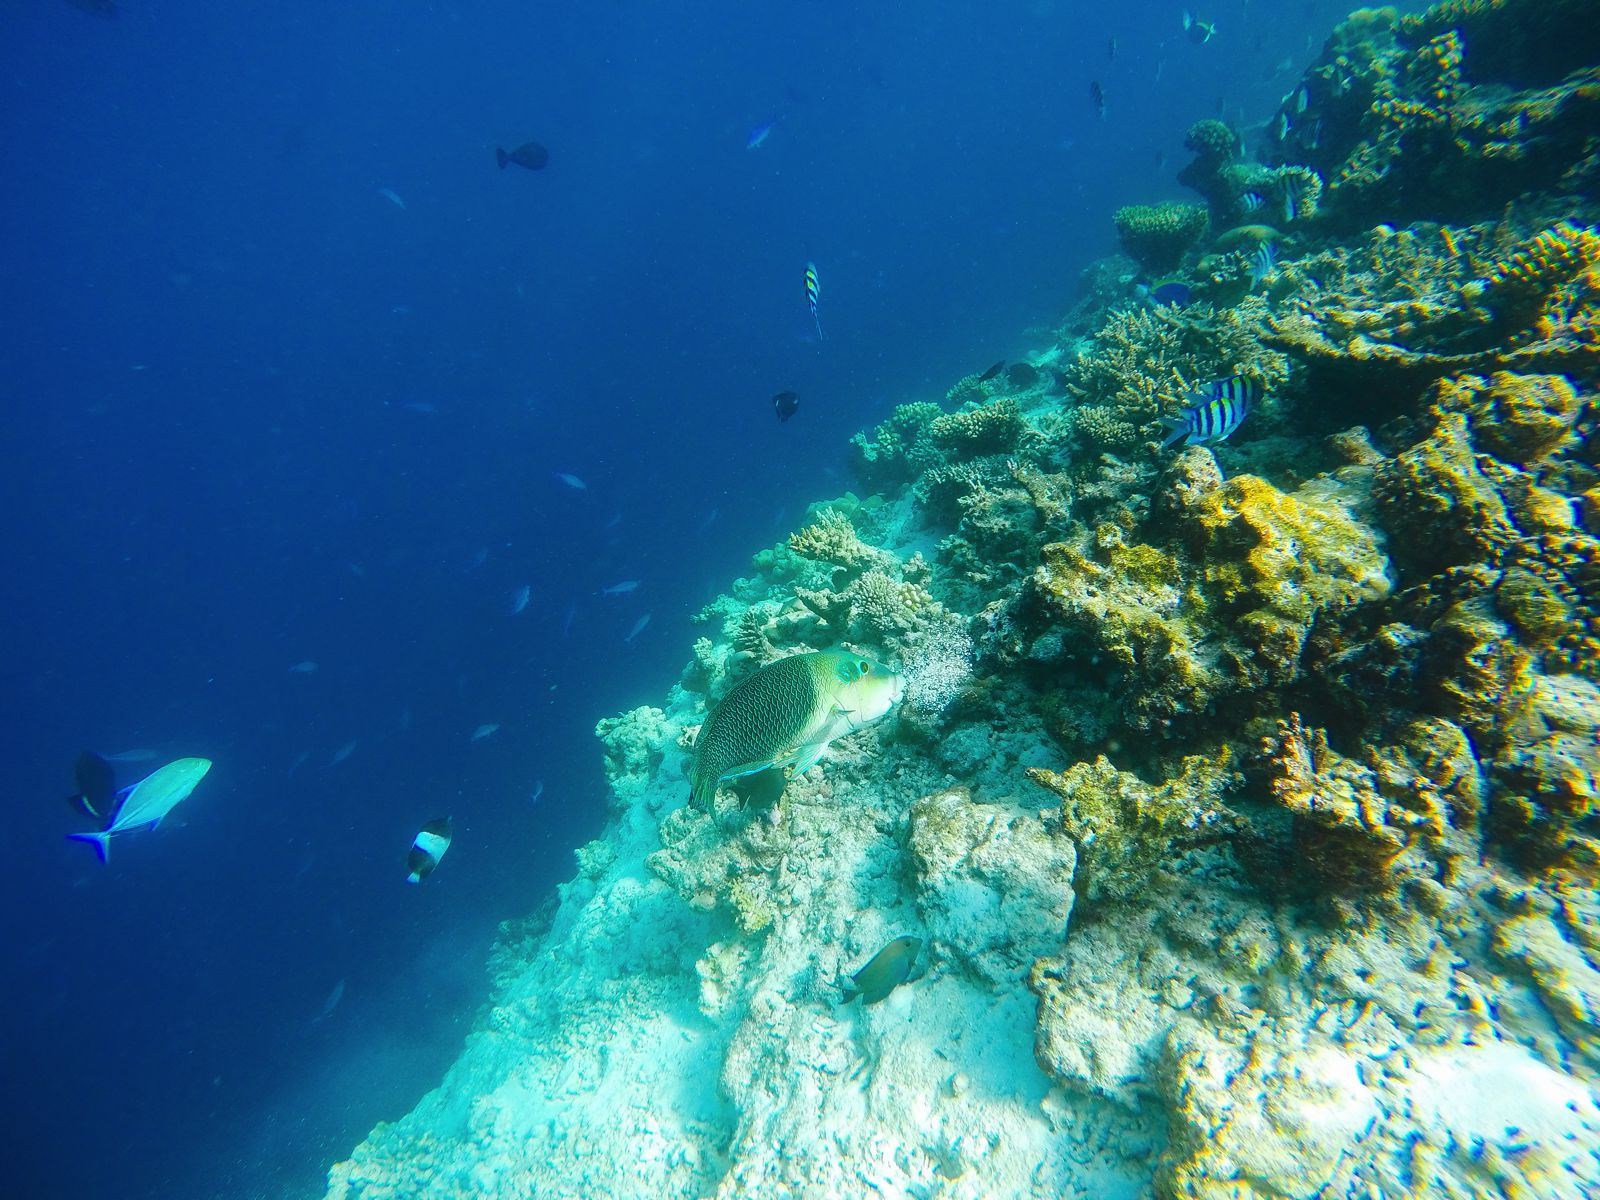 Swimming With Sharks, Turtles, Clownfish And Stingrays In The Maldives (7)